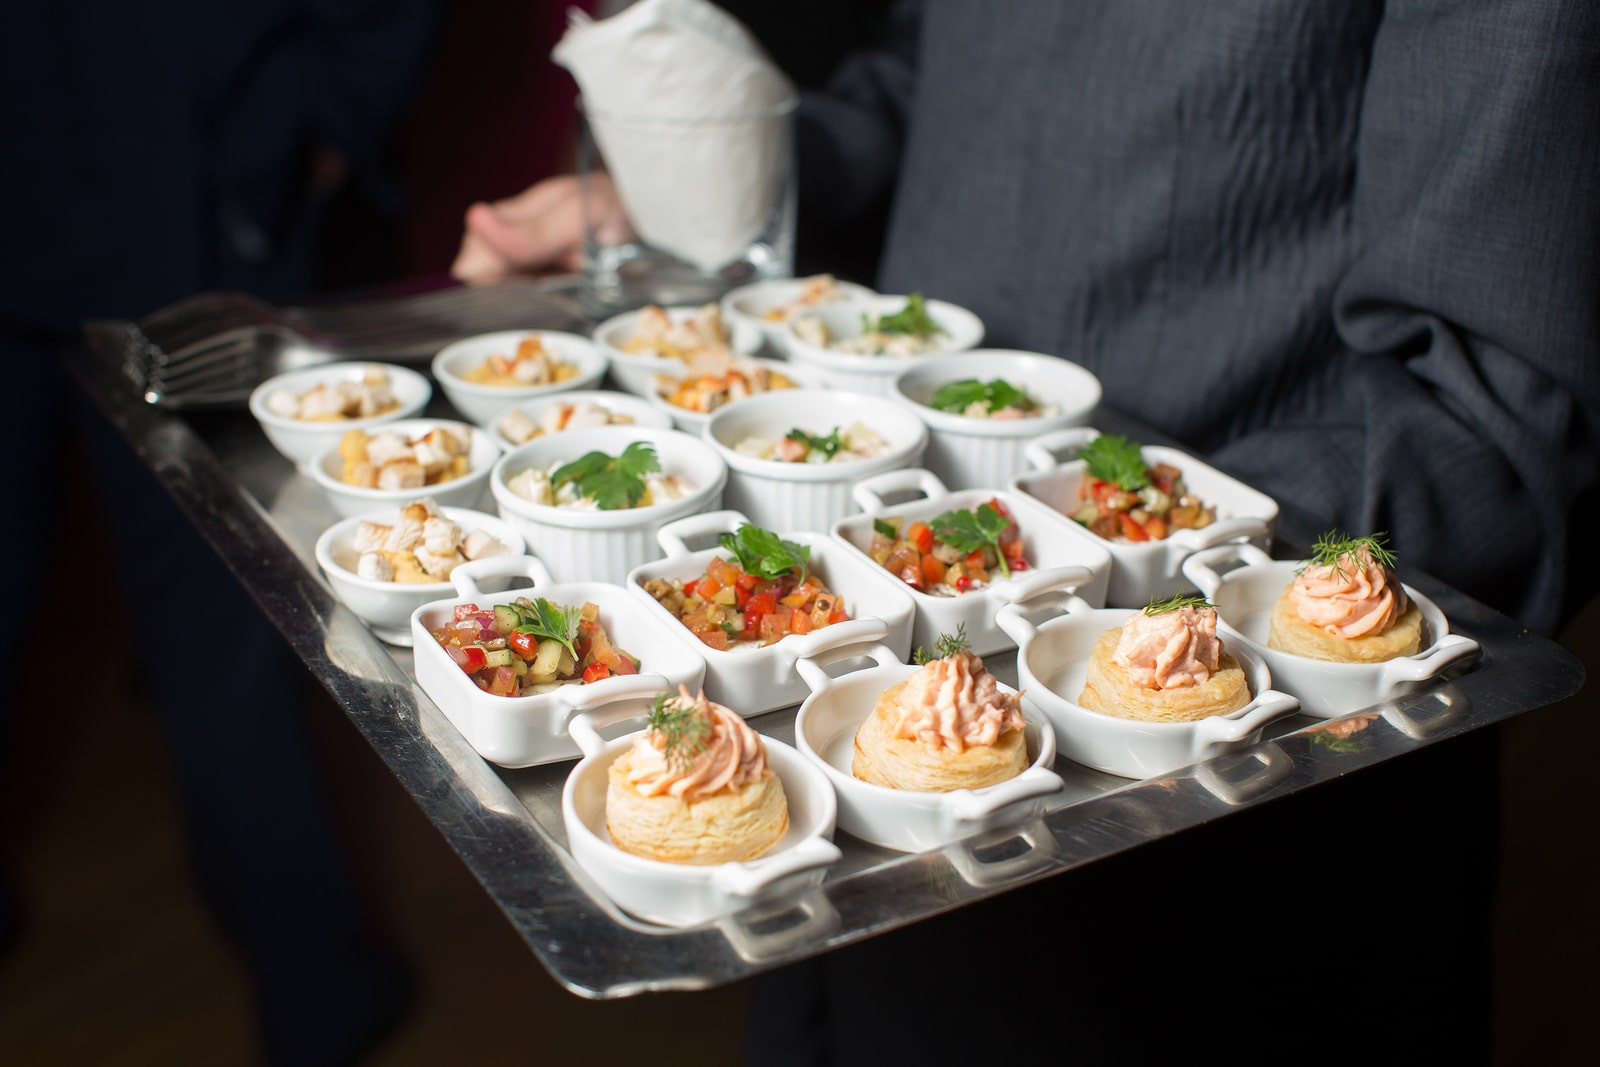 Wedding Catering In Raleigh, NC